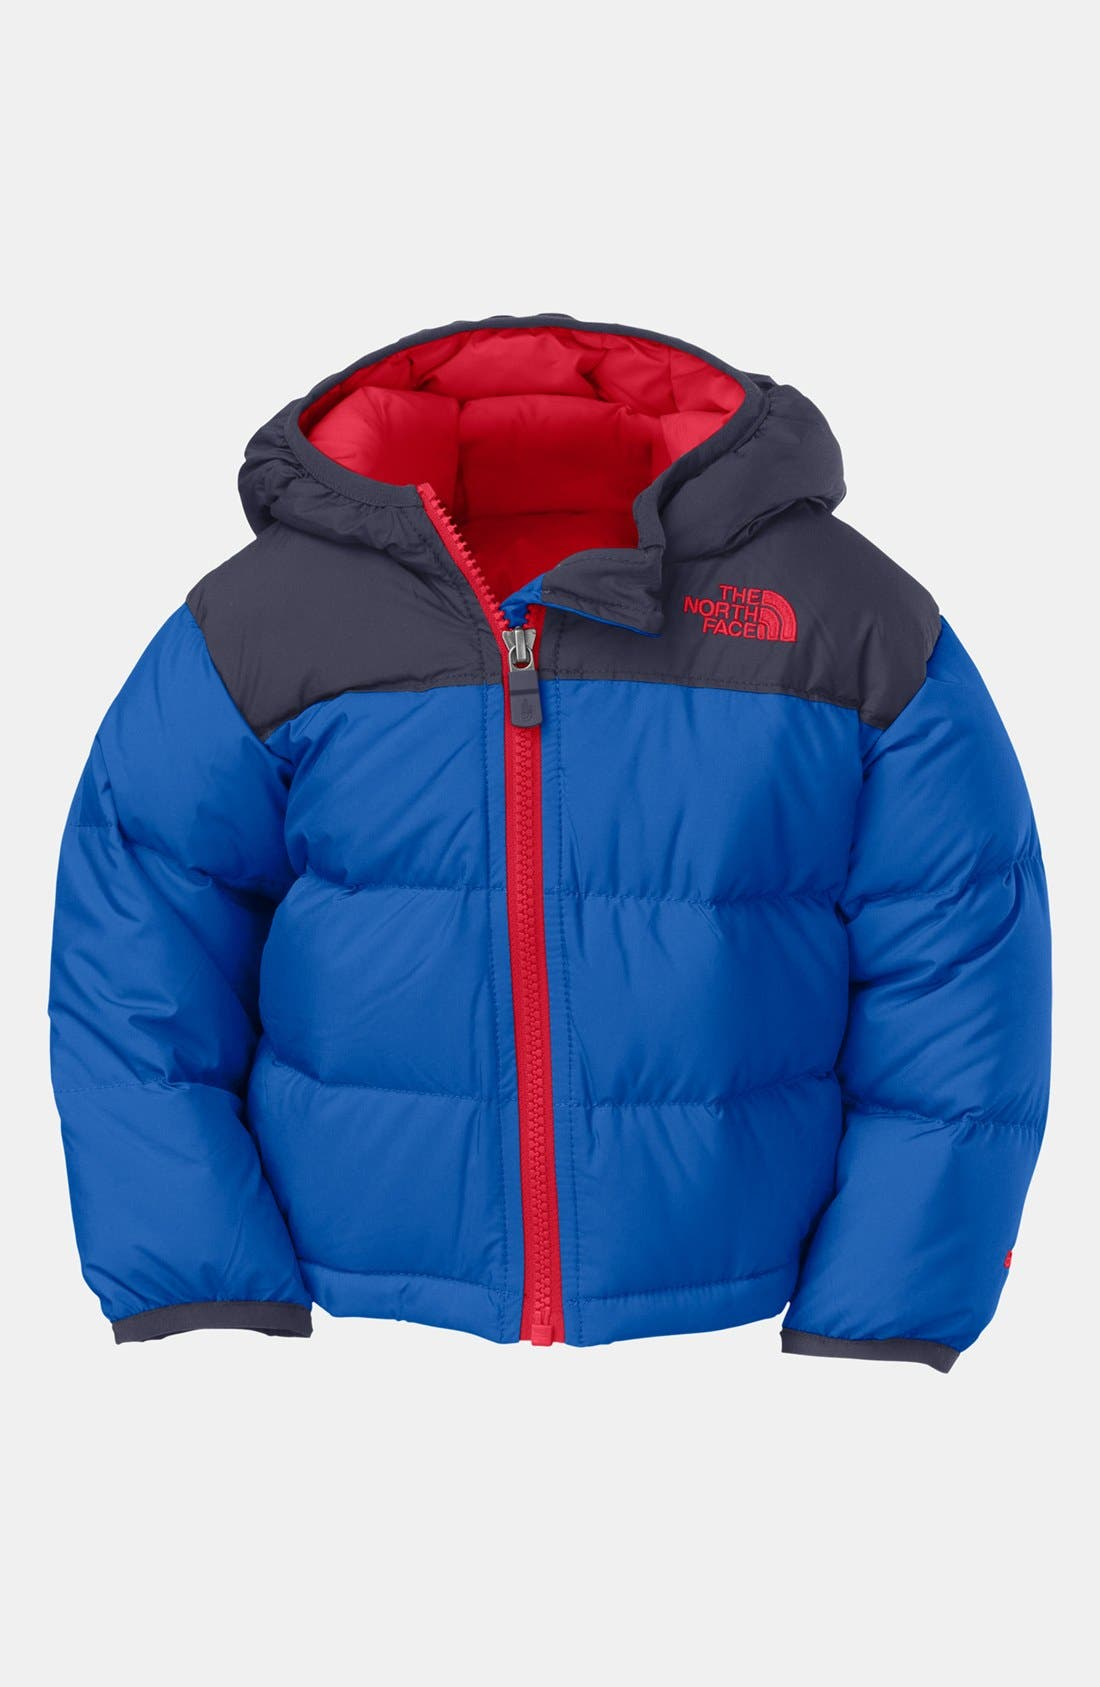 Alternate Image 1 Selected - The North Face Down Jacket & Joe's Straight Leg Jeans (Baby Boys)